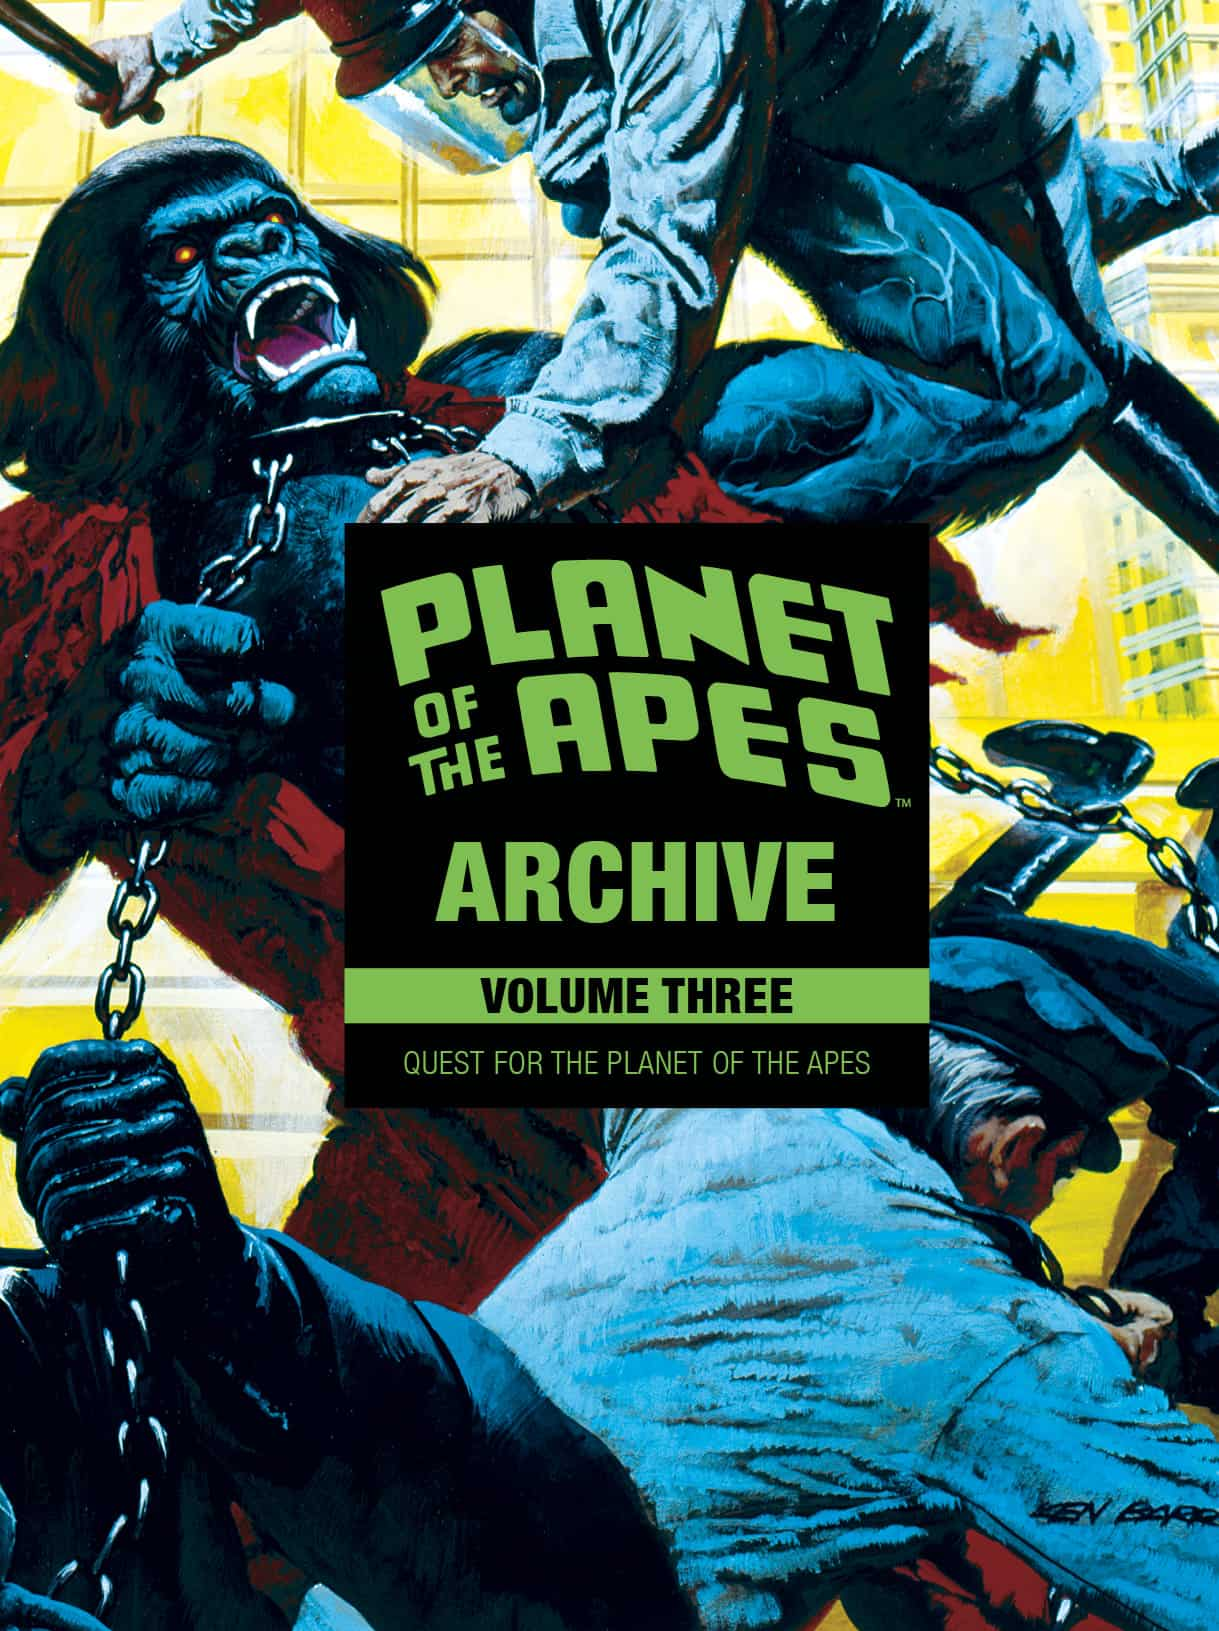 Planet Of The Apes Archive Vol. 3: Quest For The Planet Of The Apes HC